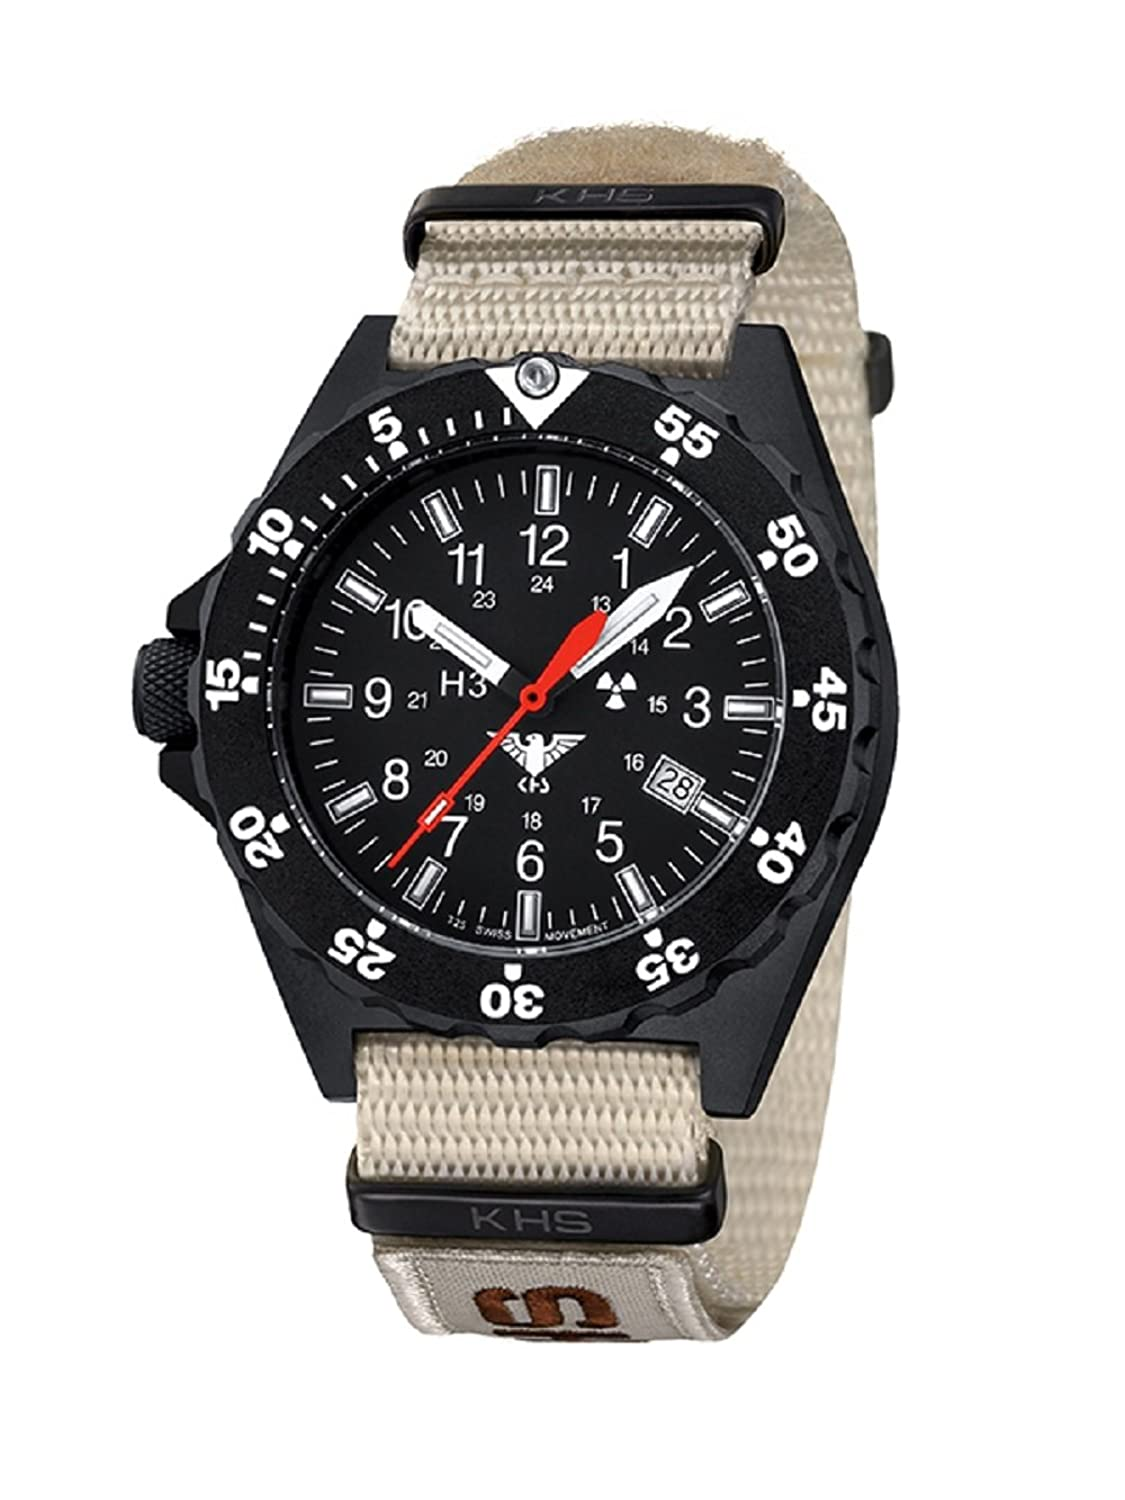 KHS Shooter KHS.SH.NXTLT5 Natoband tan inkl. Watch-Glass-Protection Schutzfolie